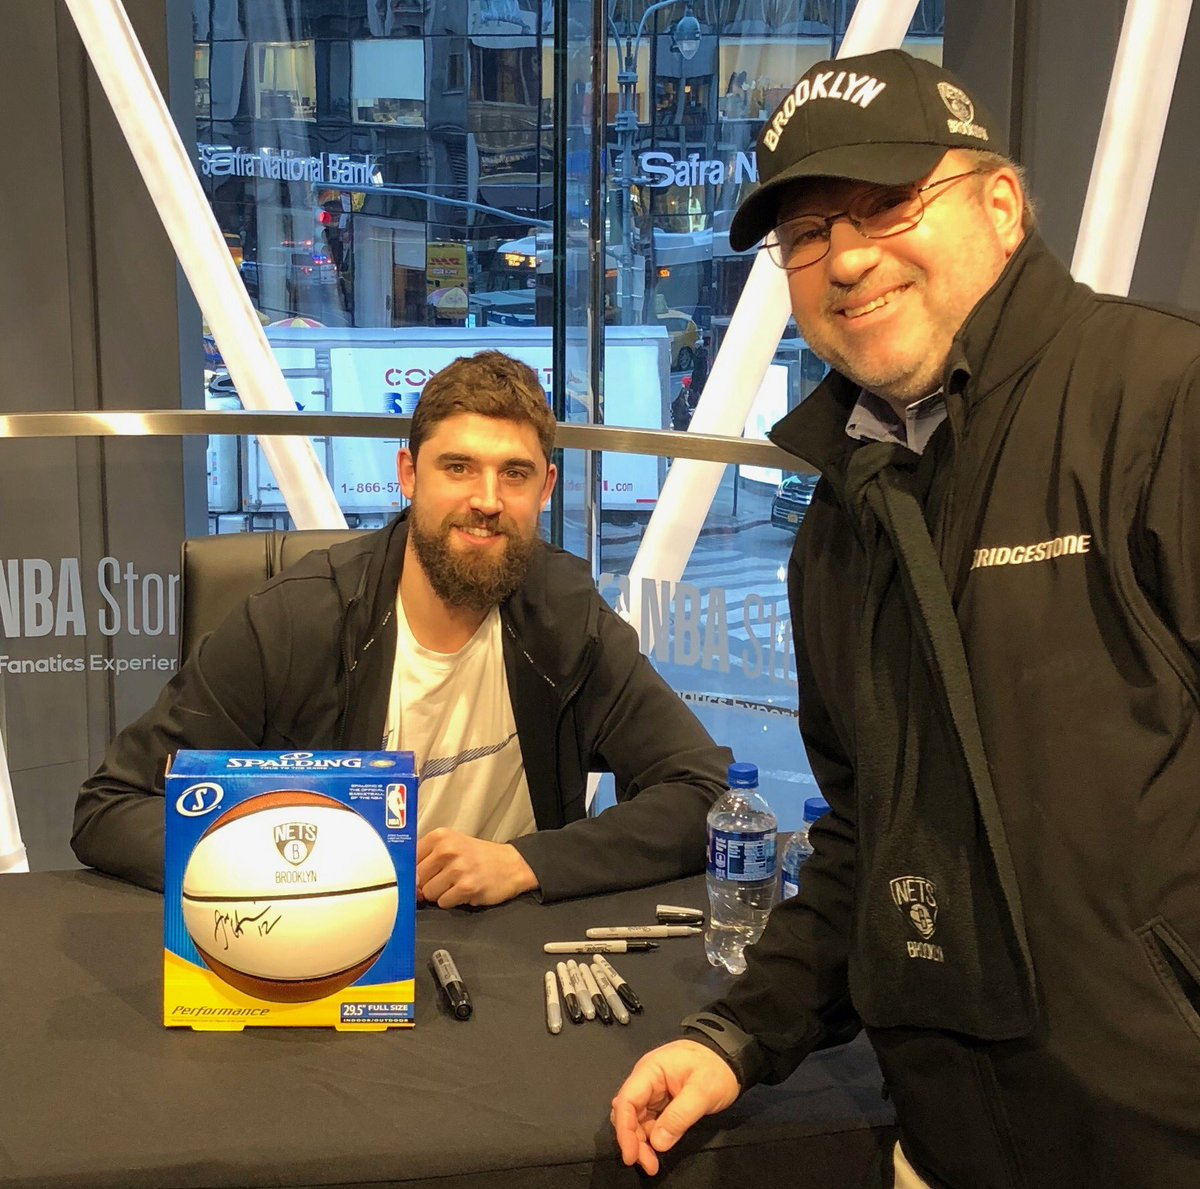 Today @BrooklynNets star and recently crowned @NBAAllStar #MtnDew3PT  champion Joe Harris visited the @GCPBID neighborhood at the @NBASTORE. Naturally I asked #JoeyBuckets to sign a basketball. He obliged.  Fun to root for a good guy. #WeGoHard